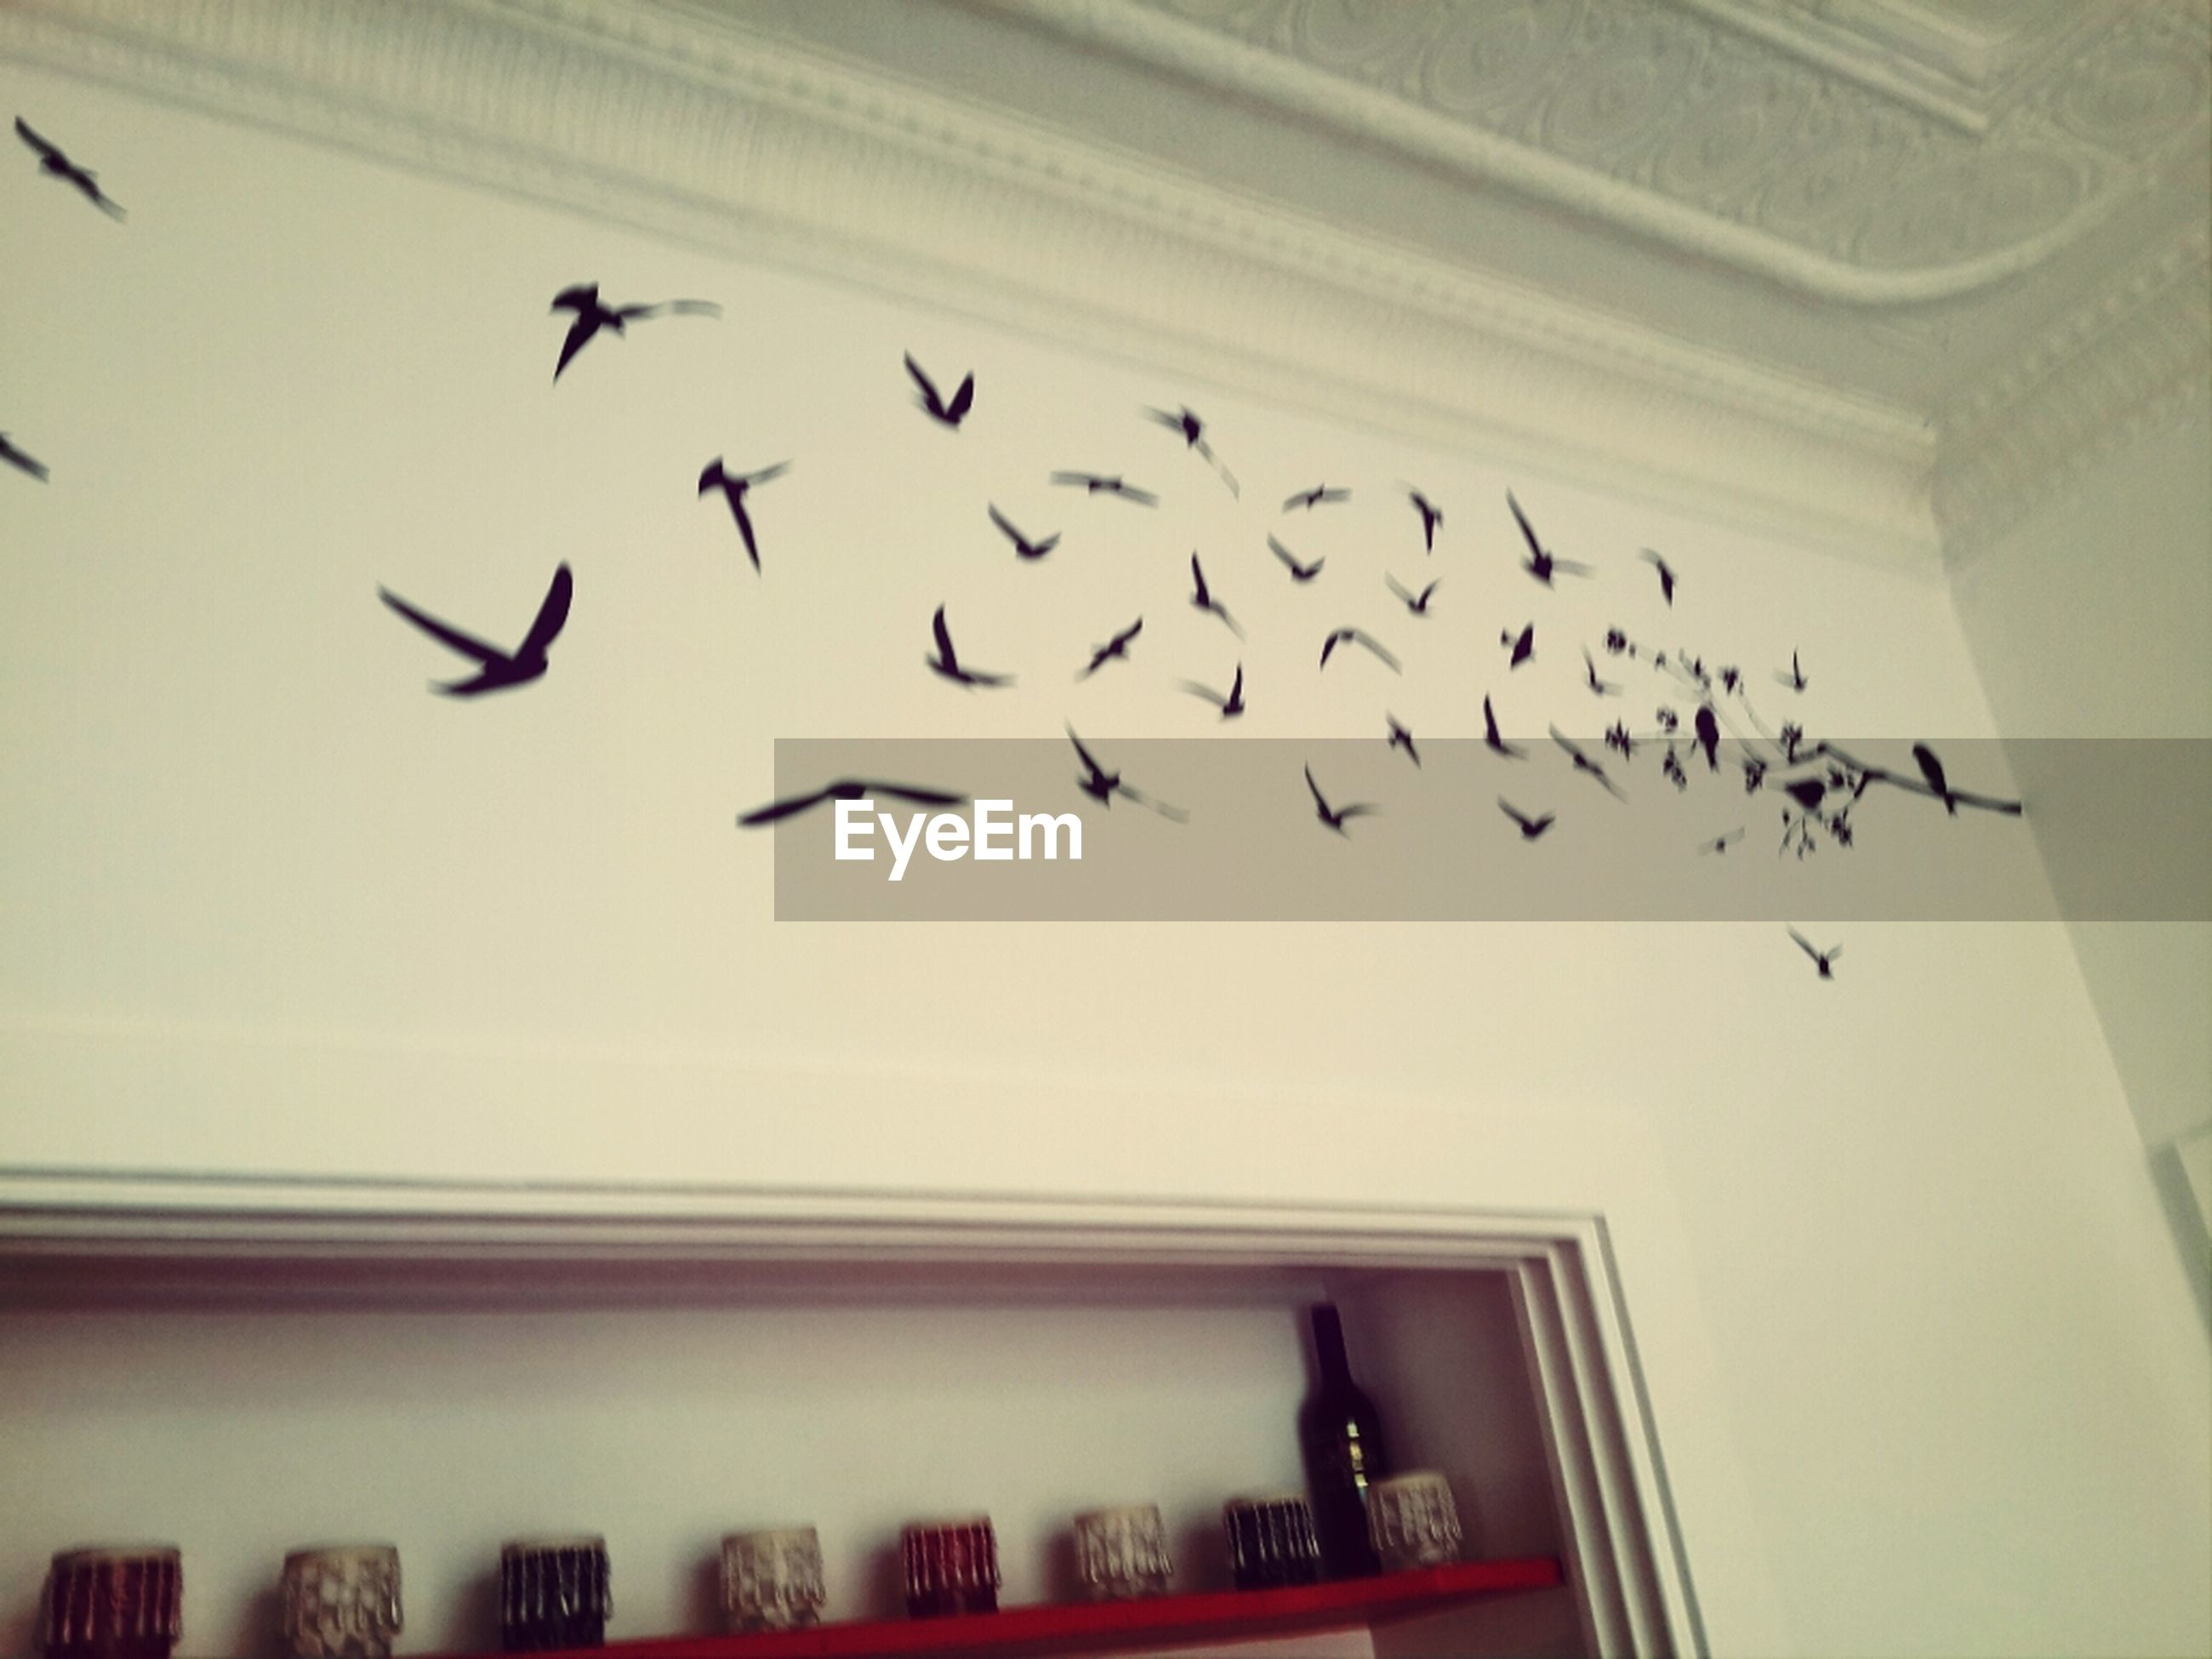 indoors, bird, flying, built structure, low angle view, flock of birds, window, text, animal themes, in a row, architecture, no people, day, western script, animals in the wild, wildlife, glass - material, ceiling, airplane